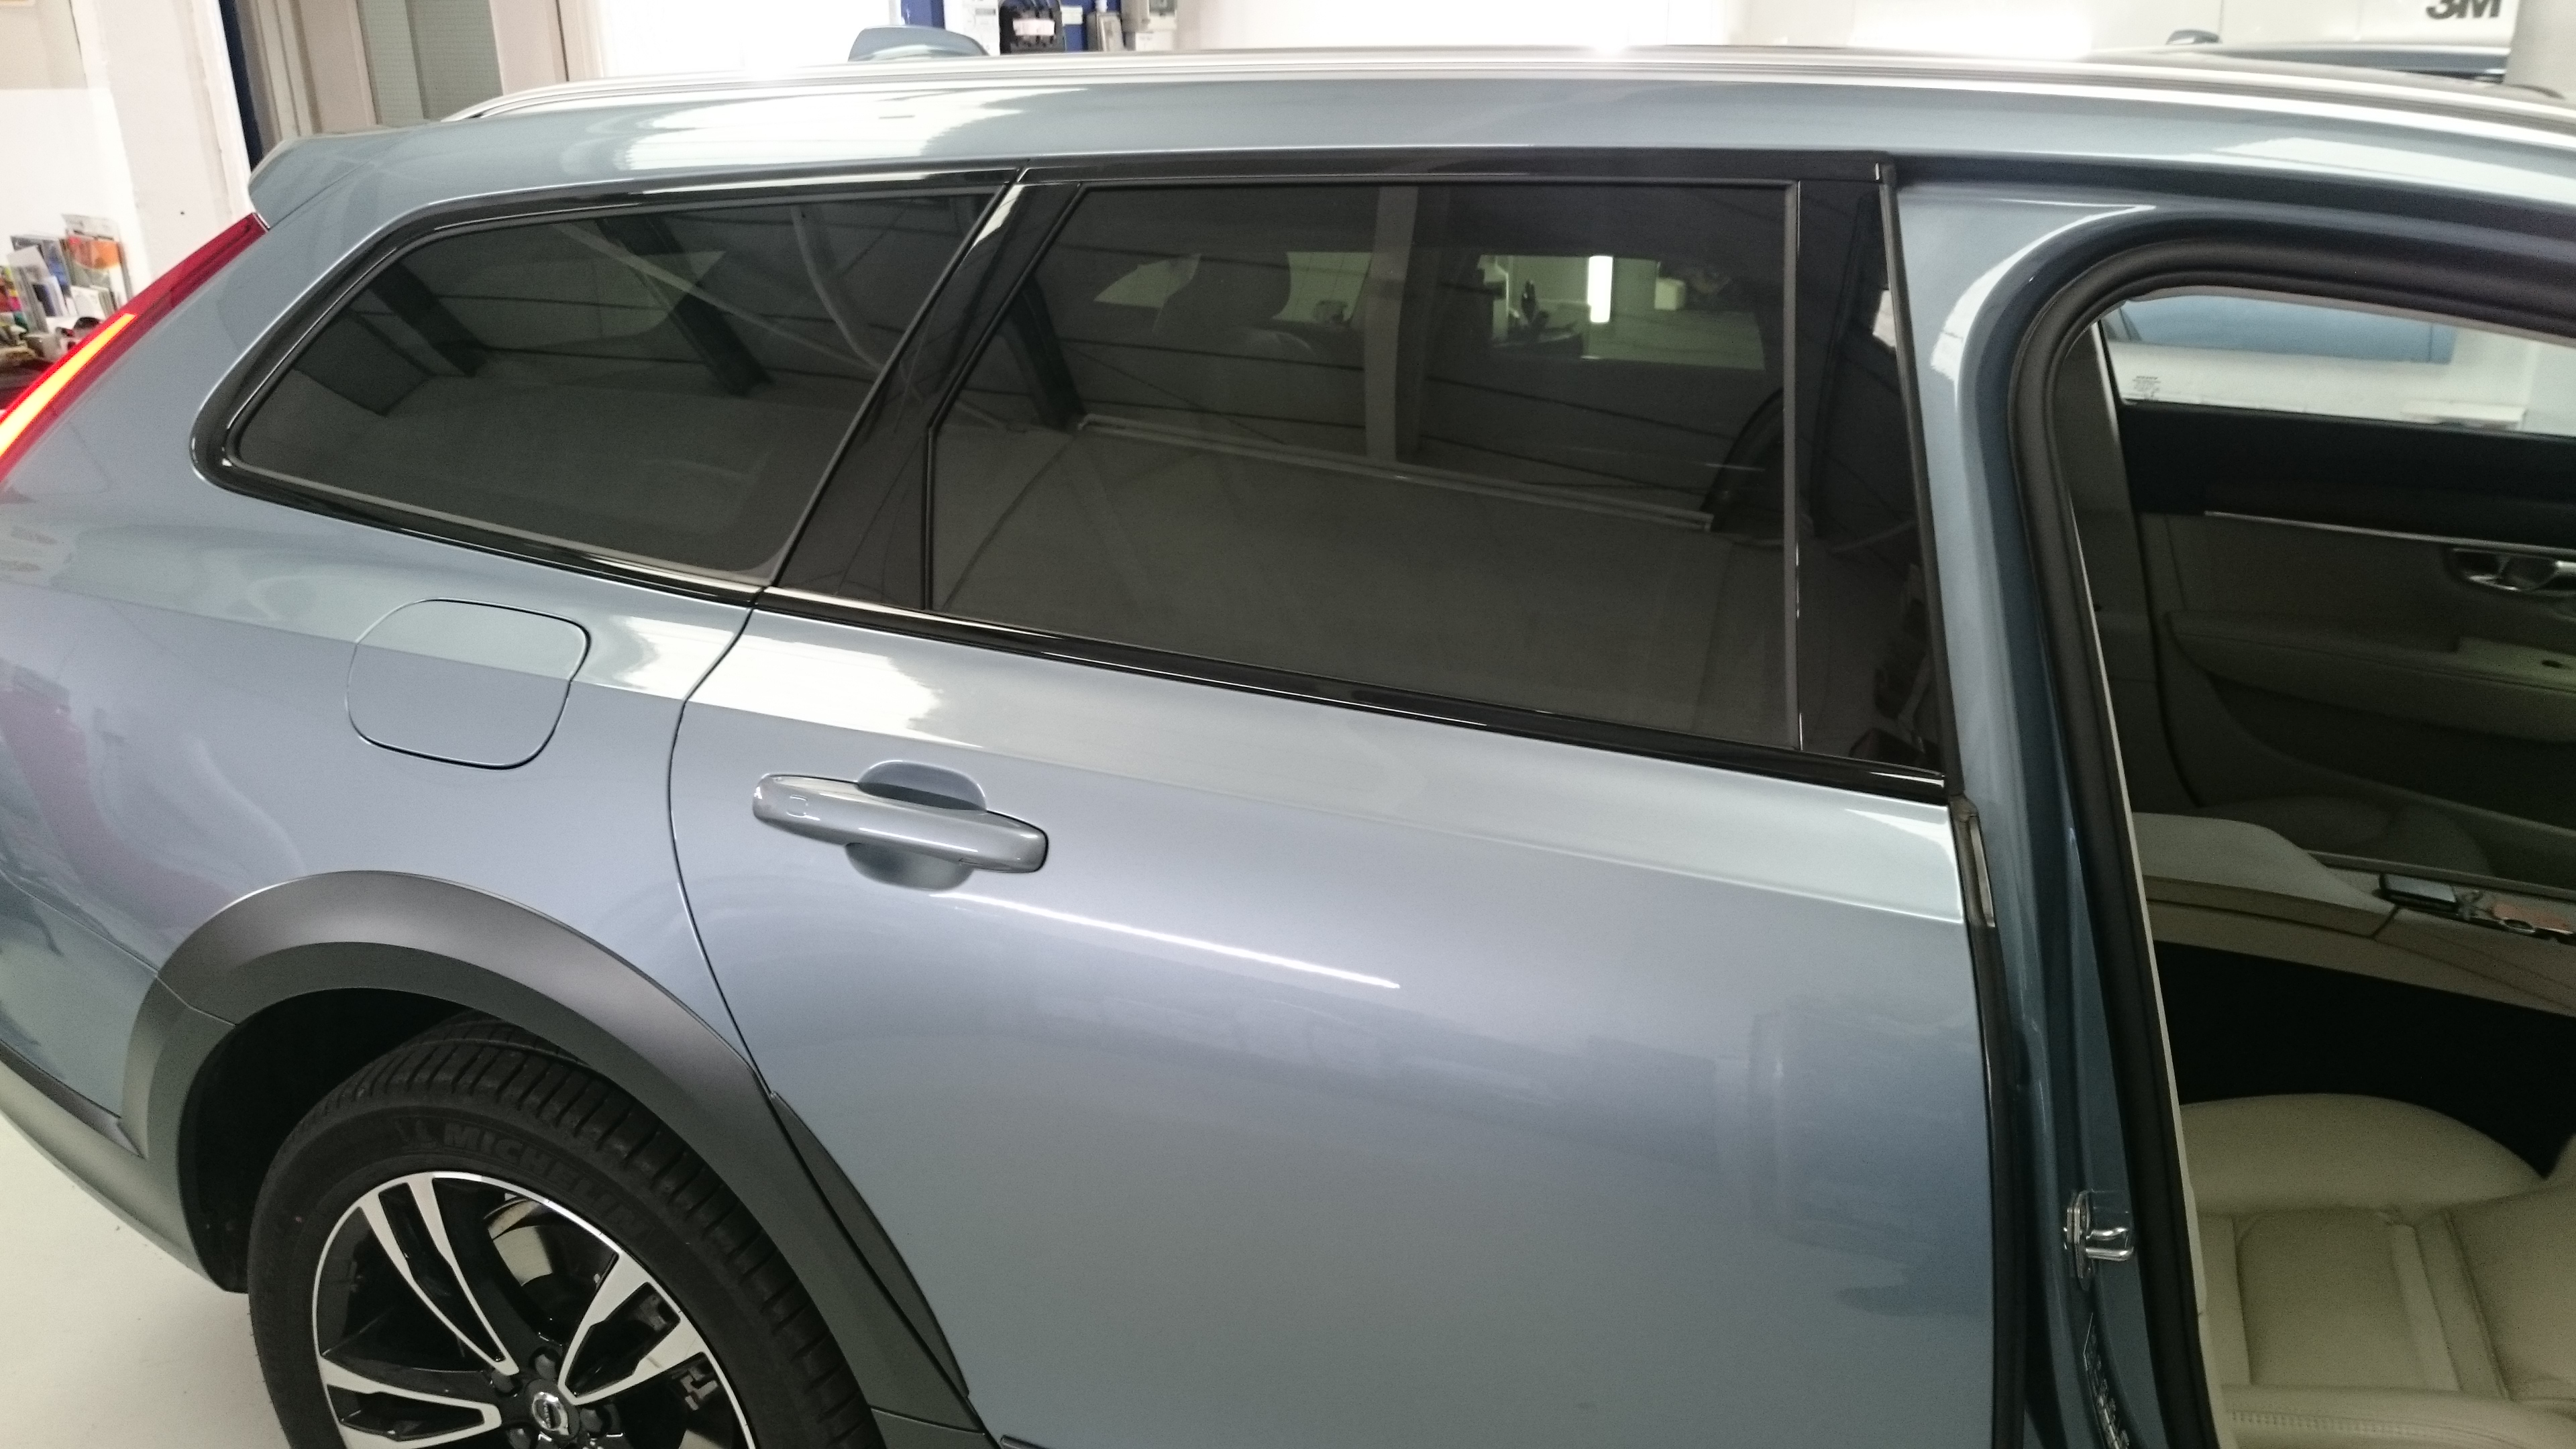 Volvo V90 window tints with Llumar ATC20 automotive window film. Tinting Express Barnstaple Devon